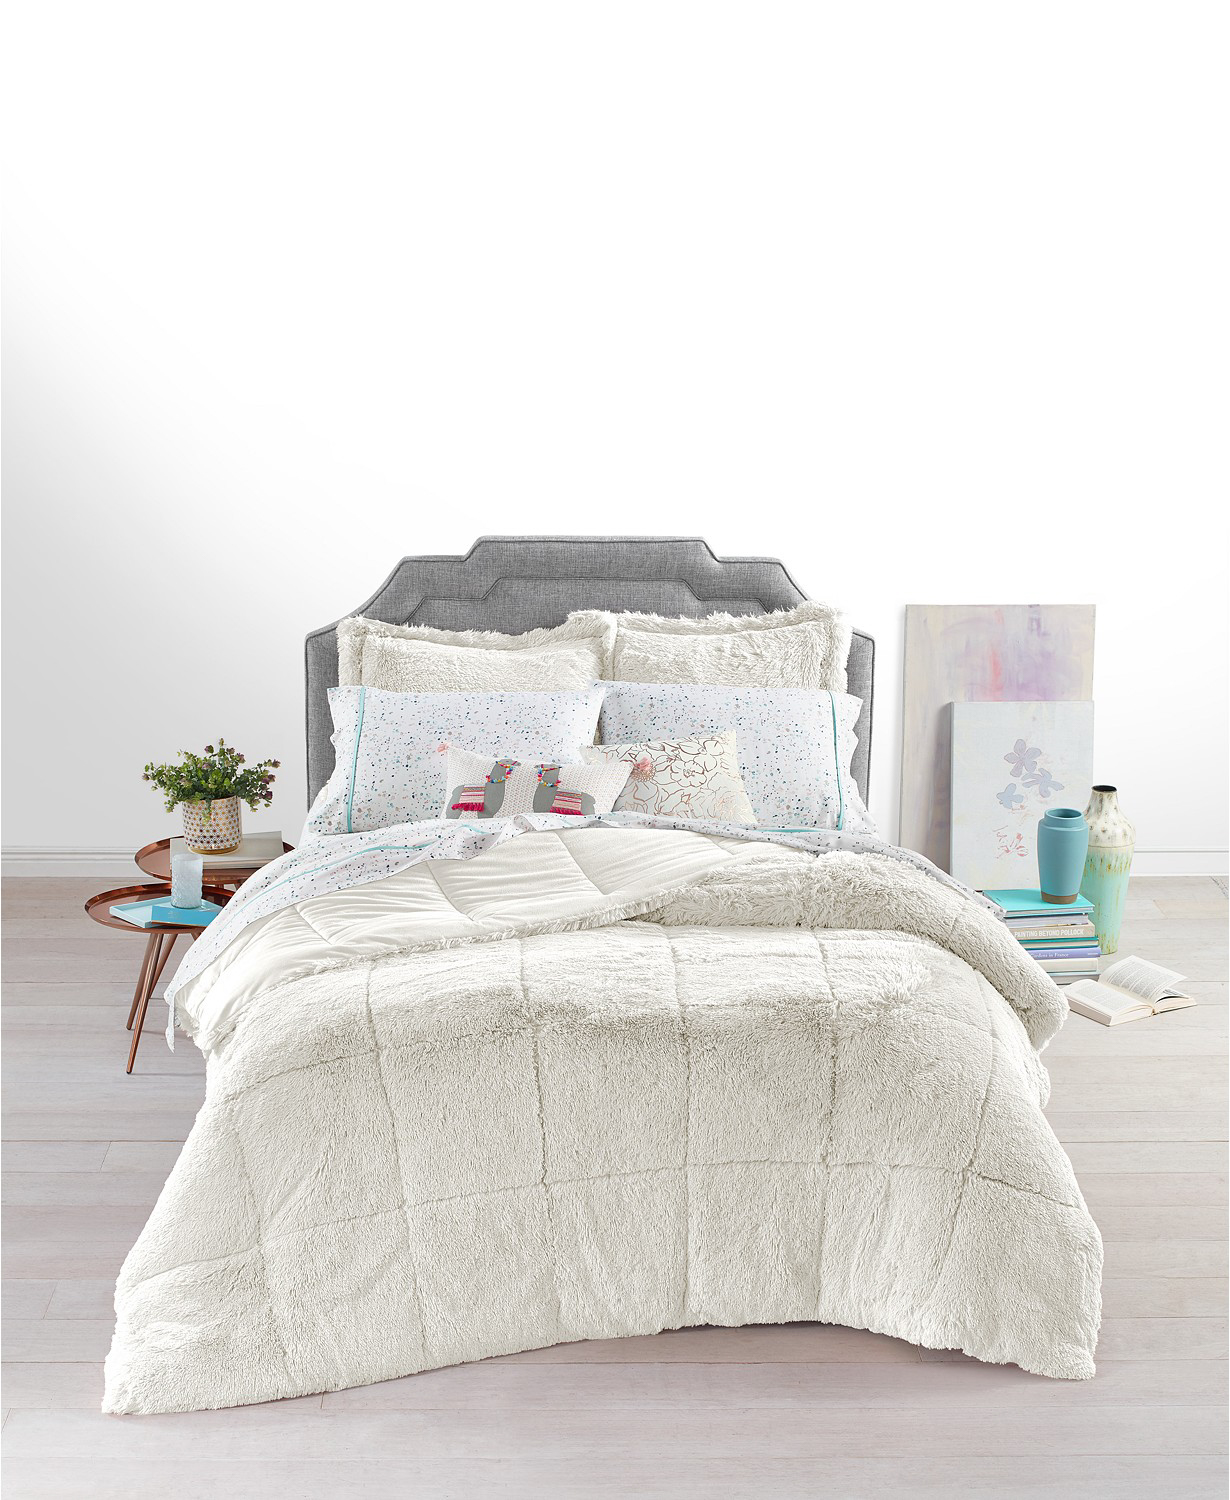 Whim by Martha Stewart Collection Shaggy Faux Fur Comforter Set